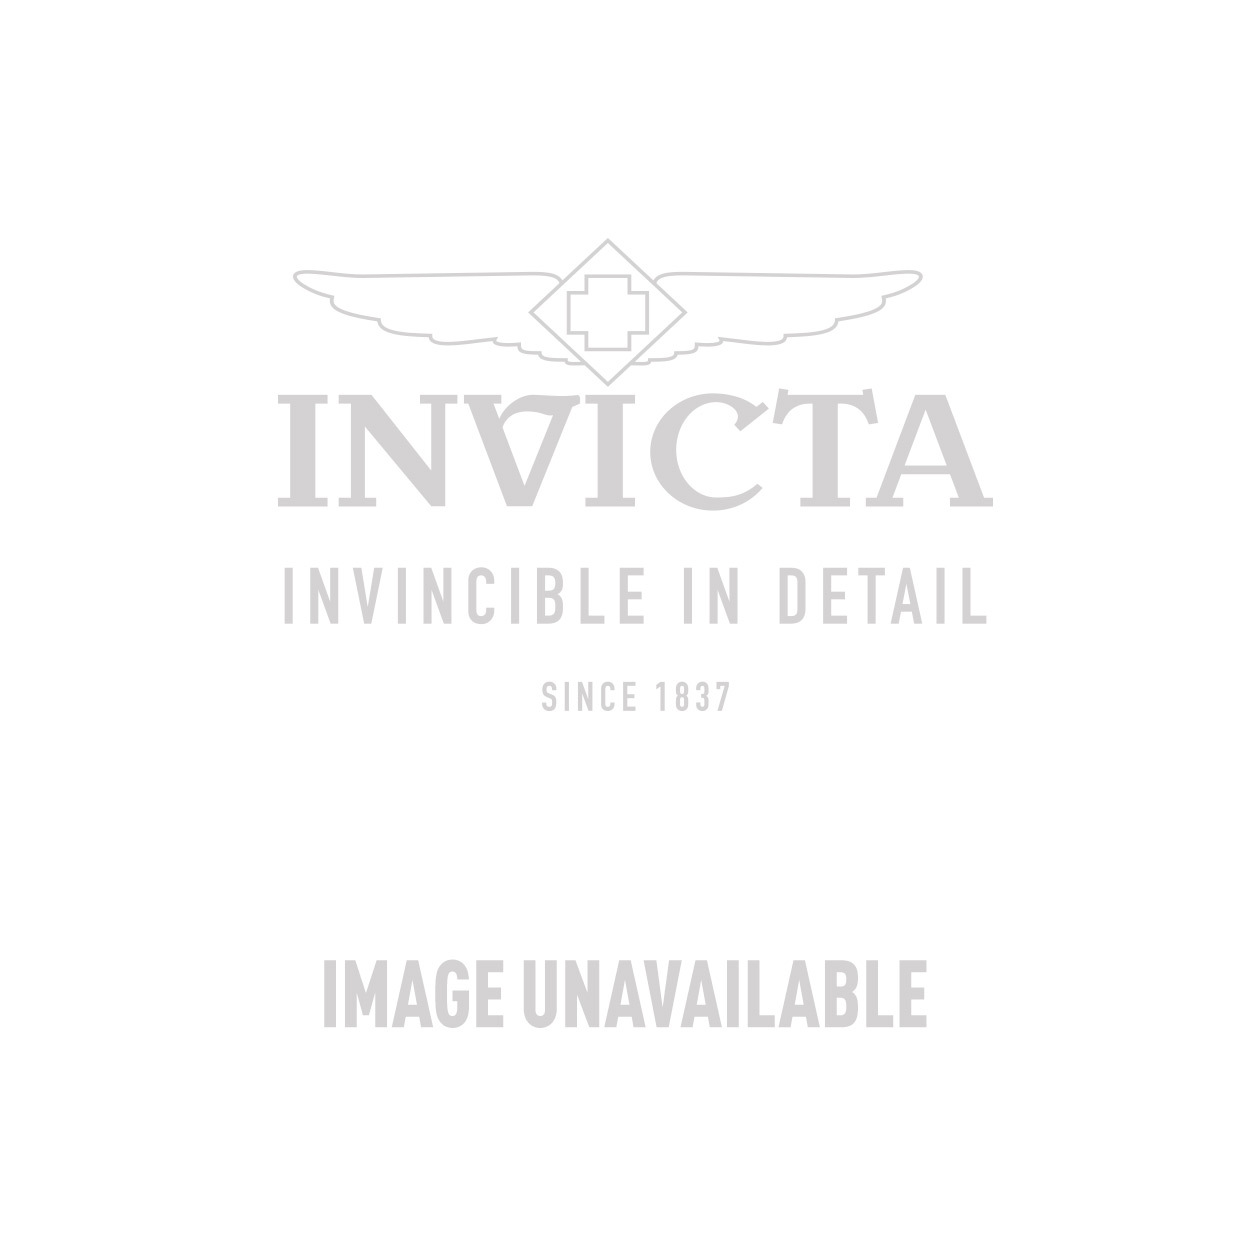 Invicta I-Force Swiss Movement Quartz Watch - Gold case with Black tone Leather band - Model 10491